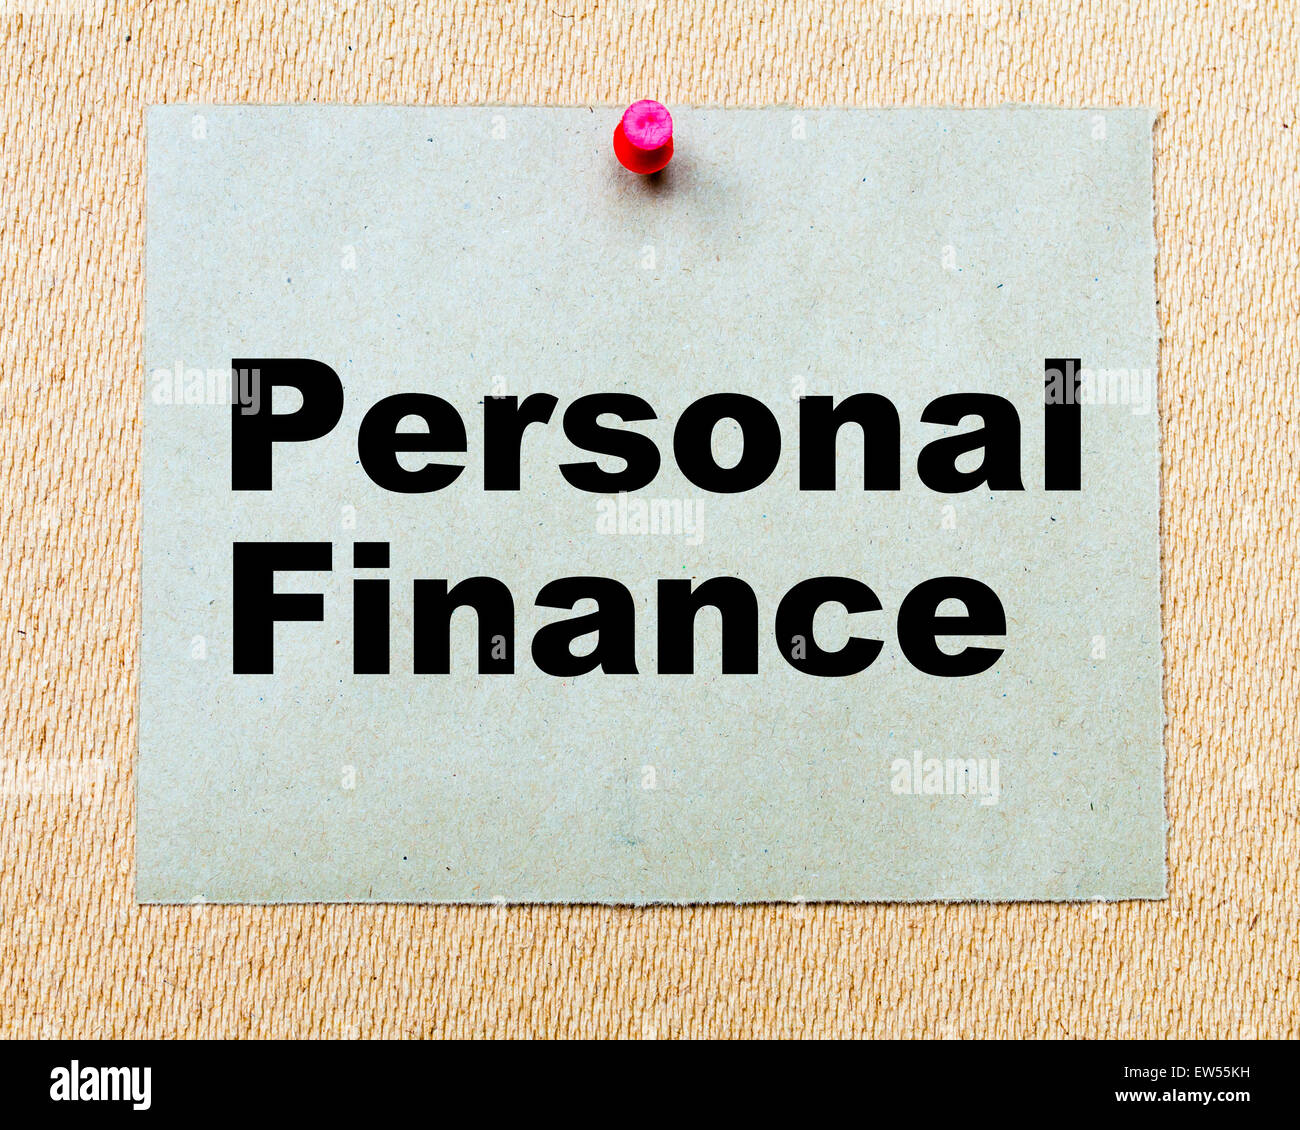 Personal Finance written on paper note pinned with red thumbtack on wooden board. Business conceptual Image - Stock Image